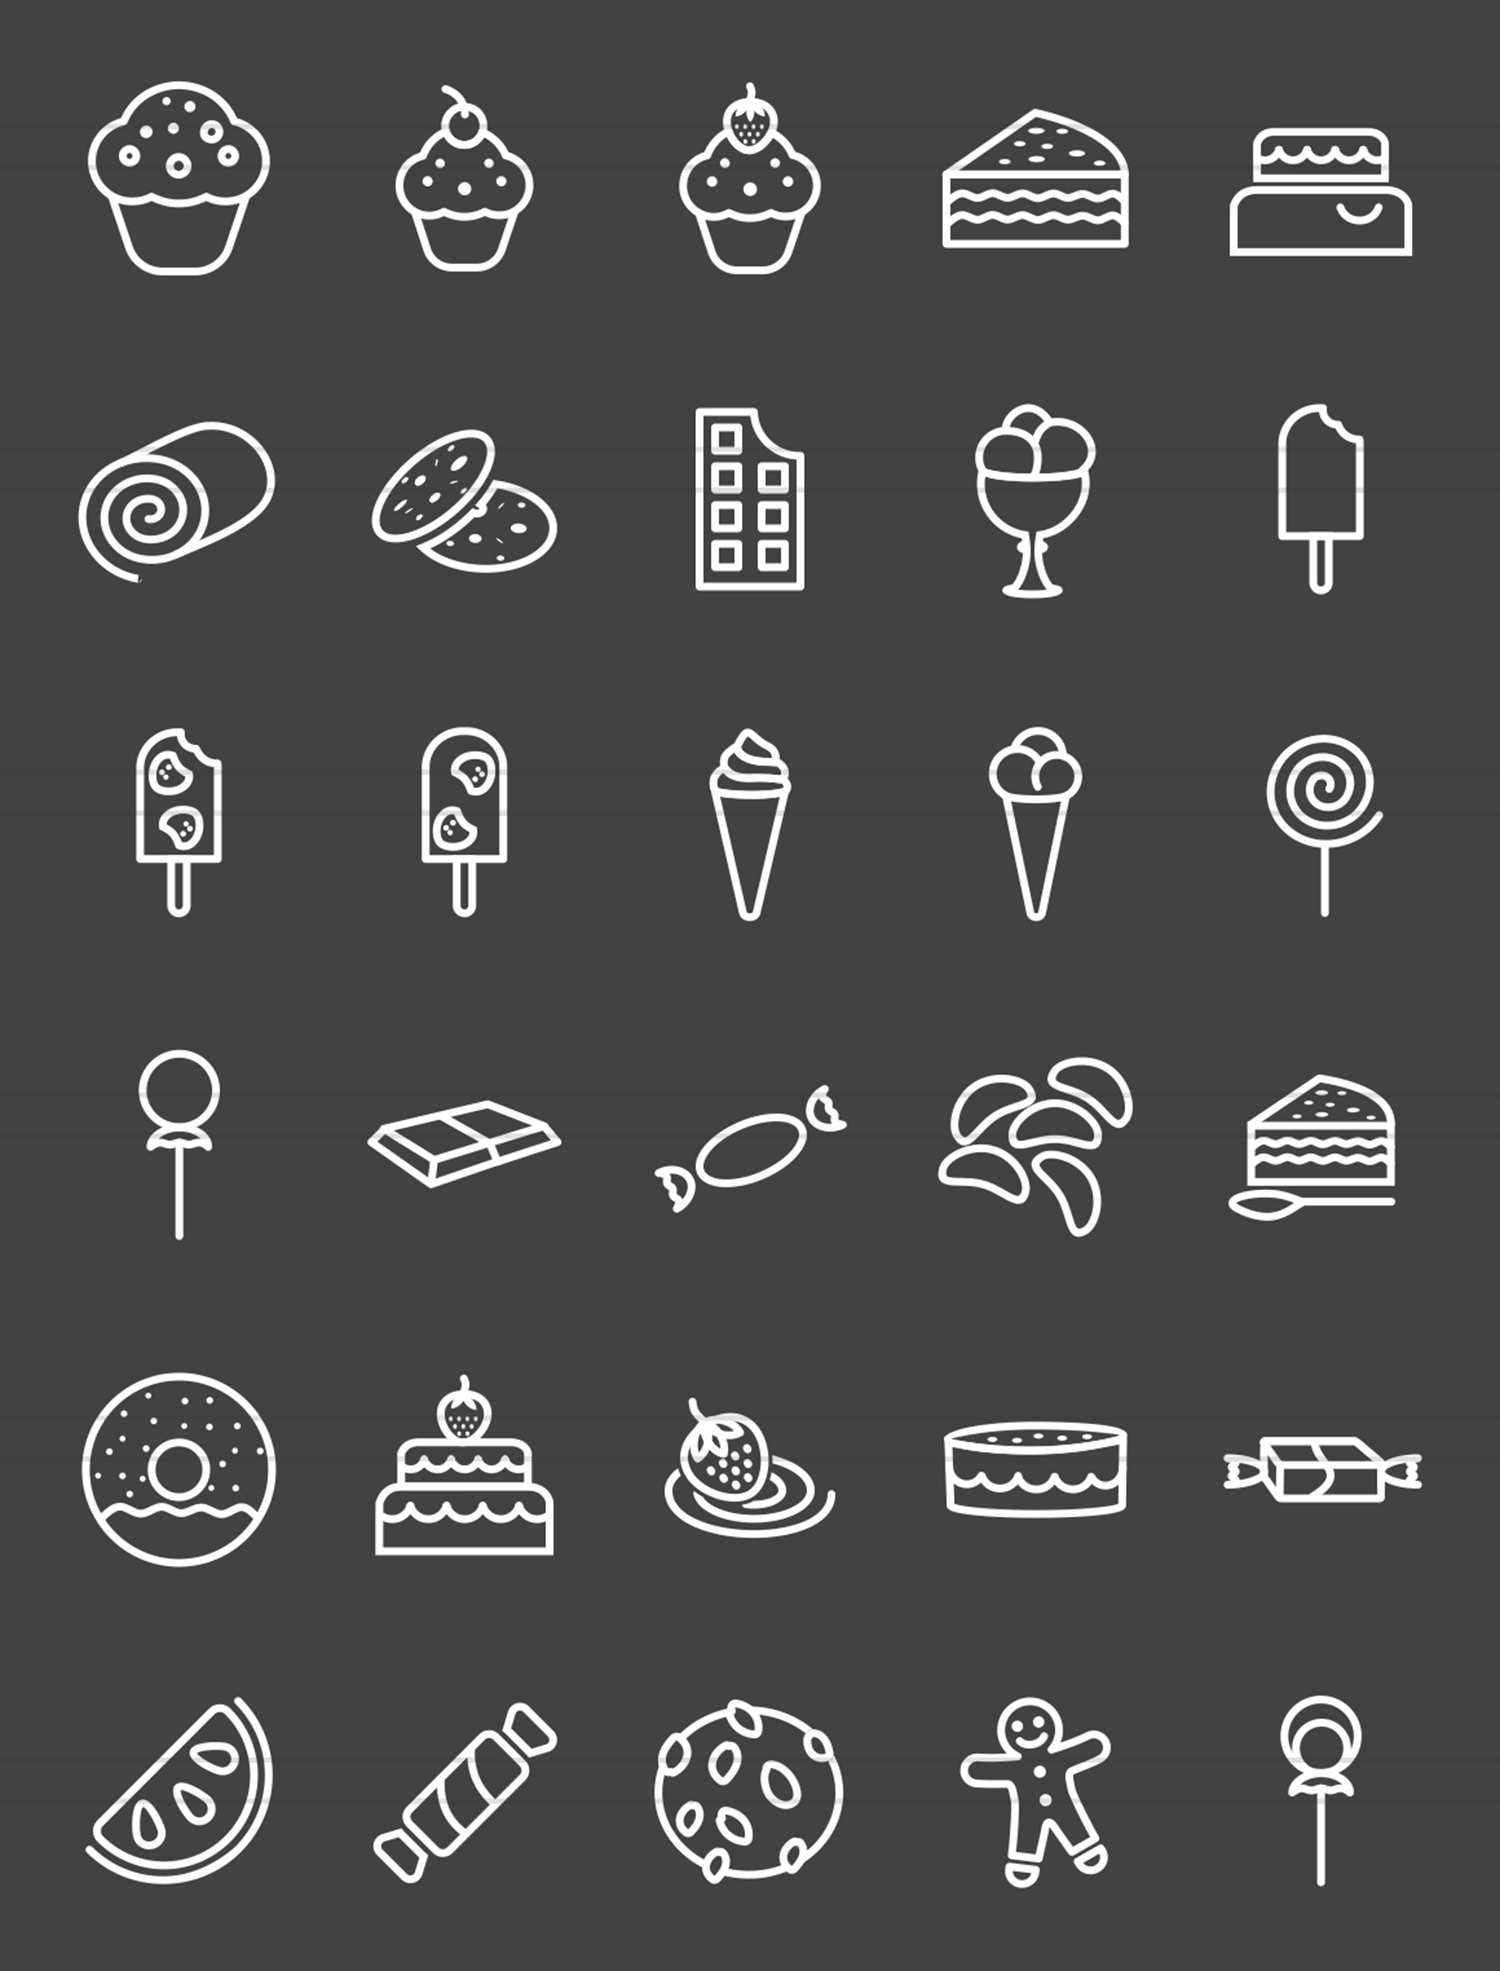 30 Sweets & Confectionery Line Inverted Icons example image 2